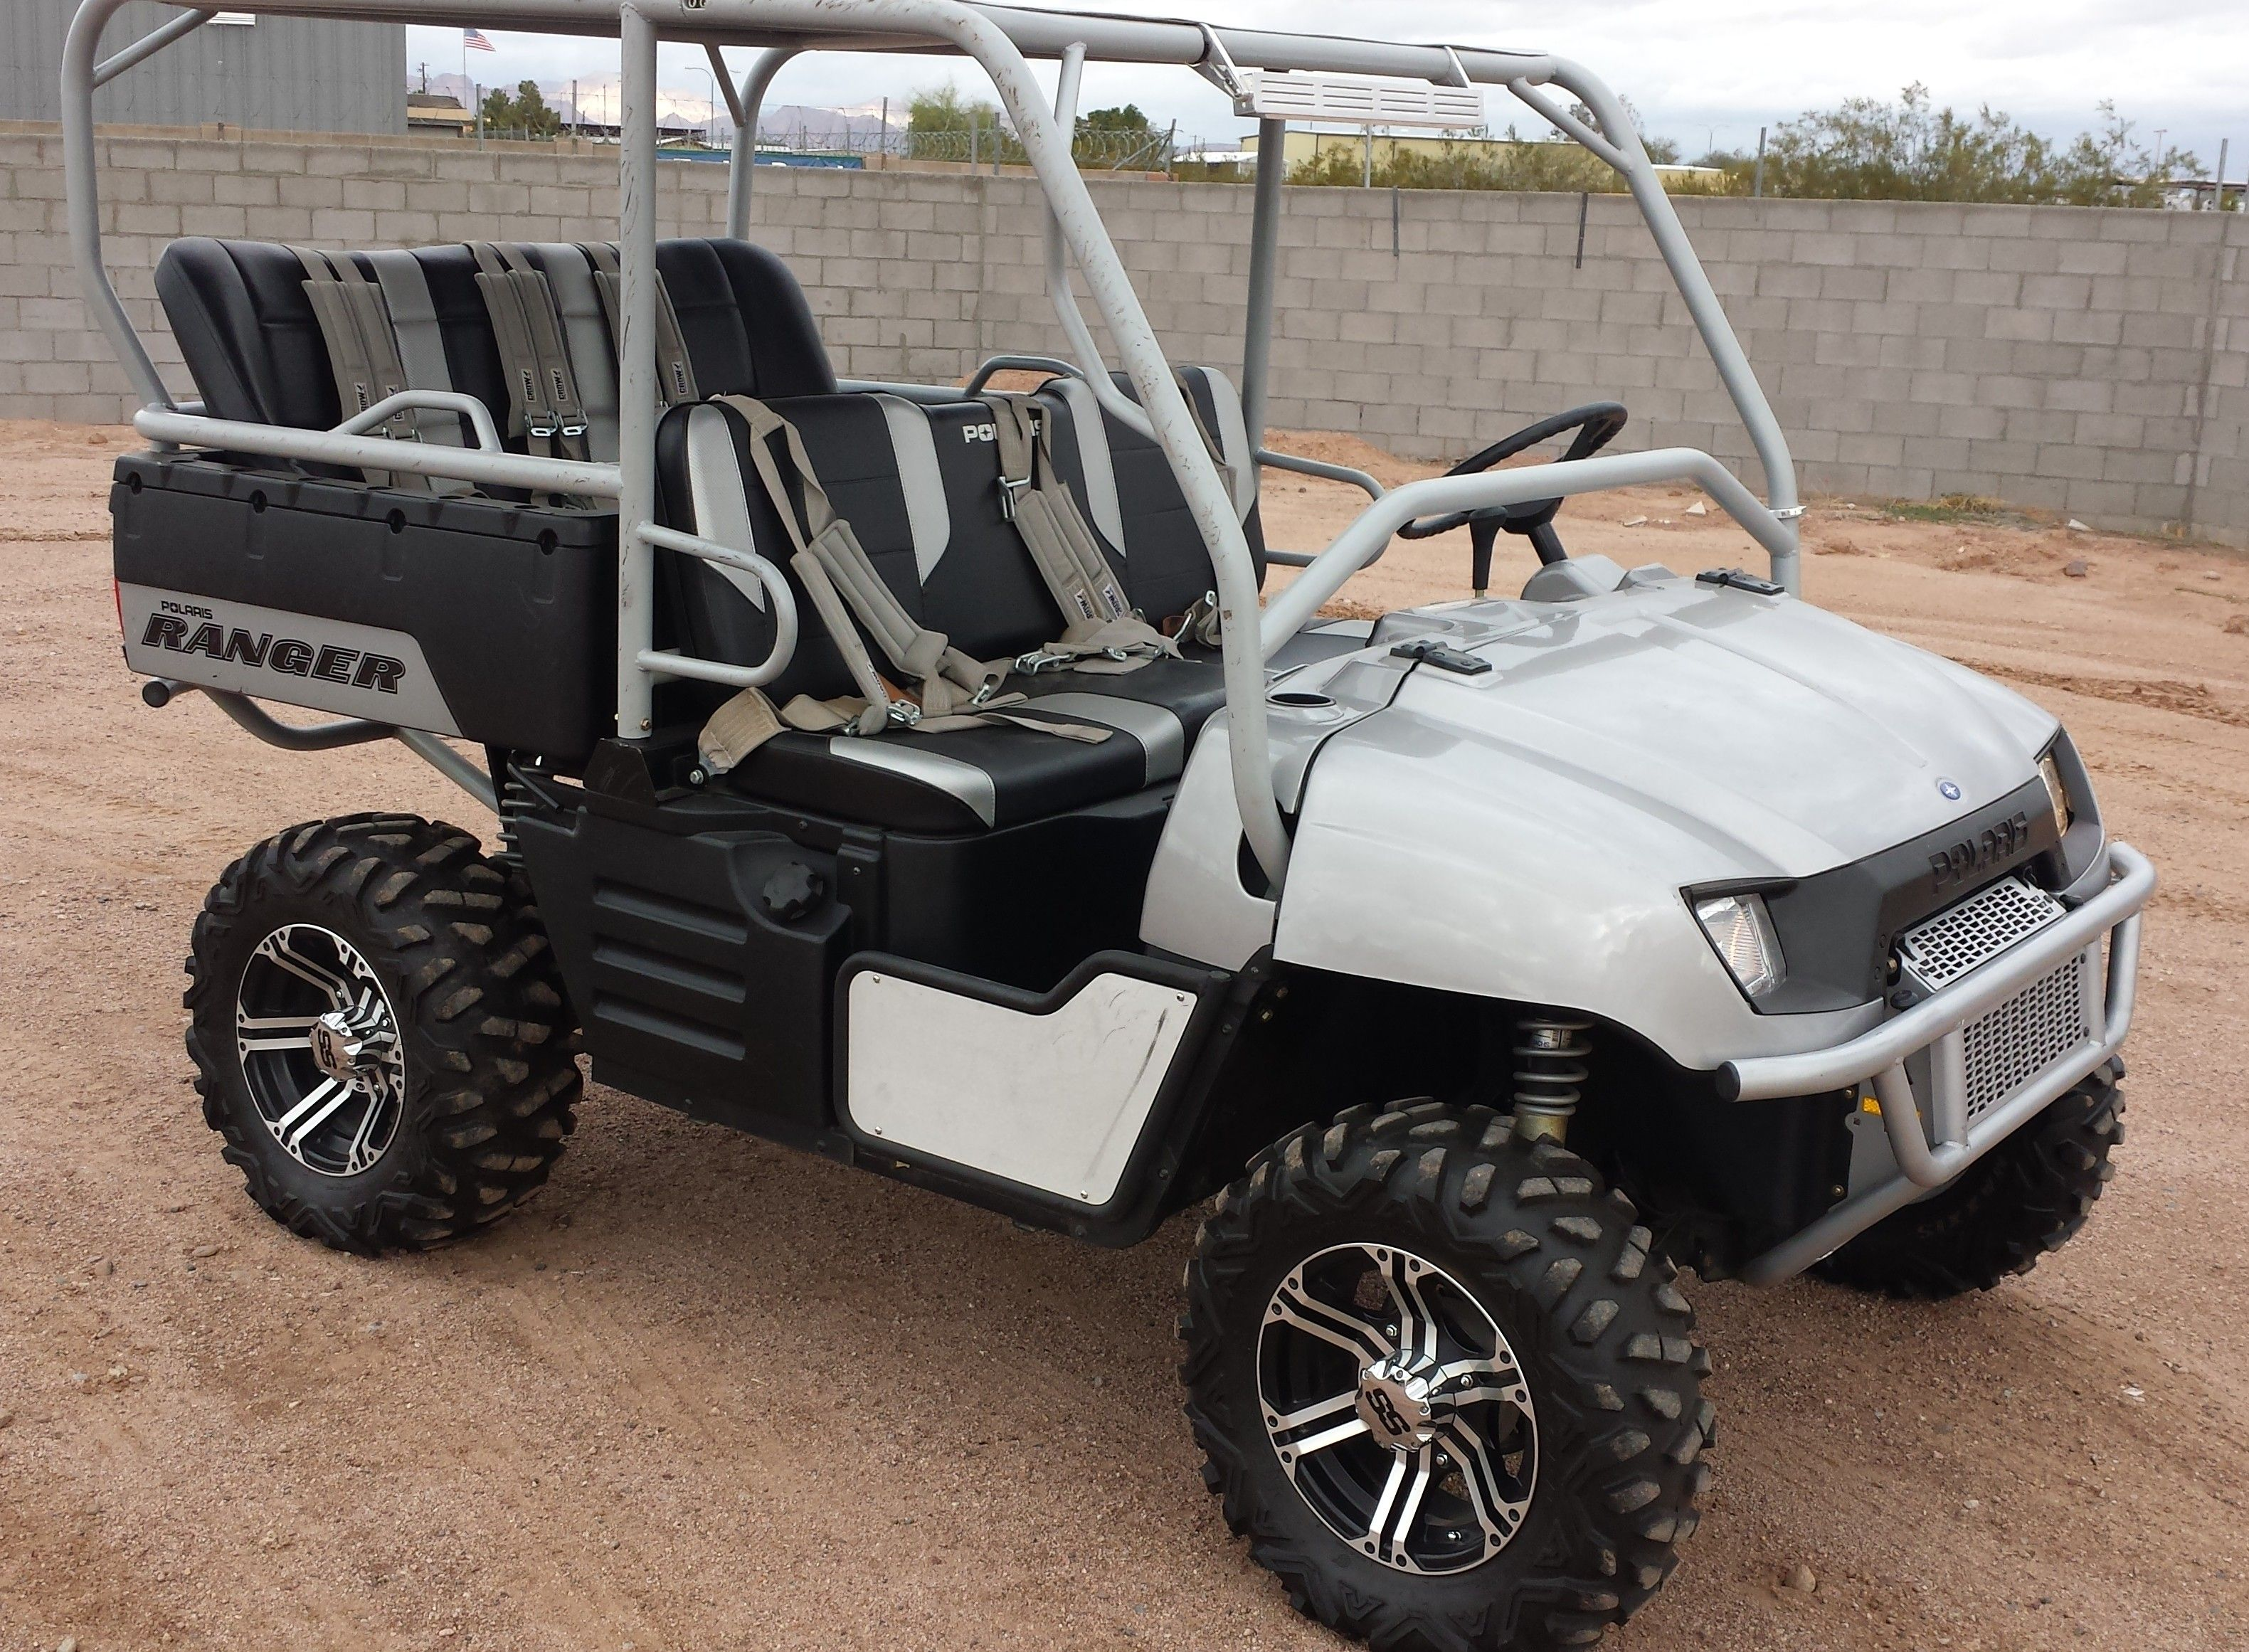 2007 Polaris Ranger 4x4 Full Customized Only 104 Hrs Of Usage Full Roll Over Protection Removable Roof Panels D Ranger 4x4 Polaris Ranger Ranger